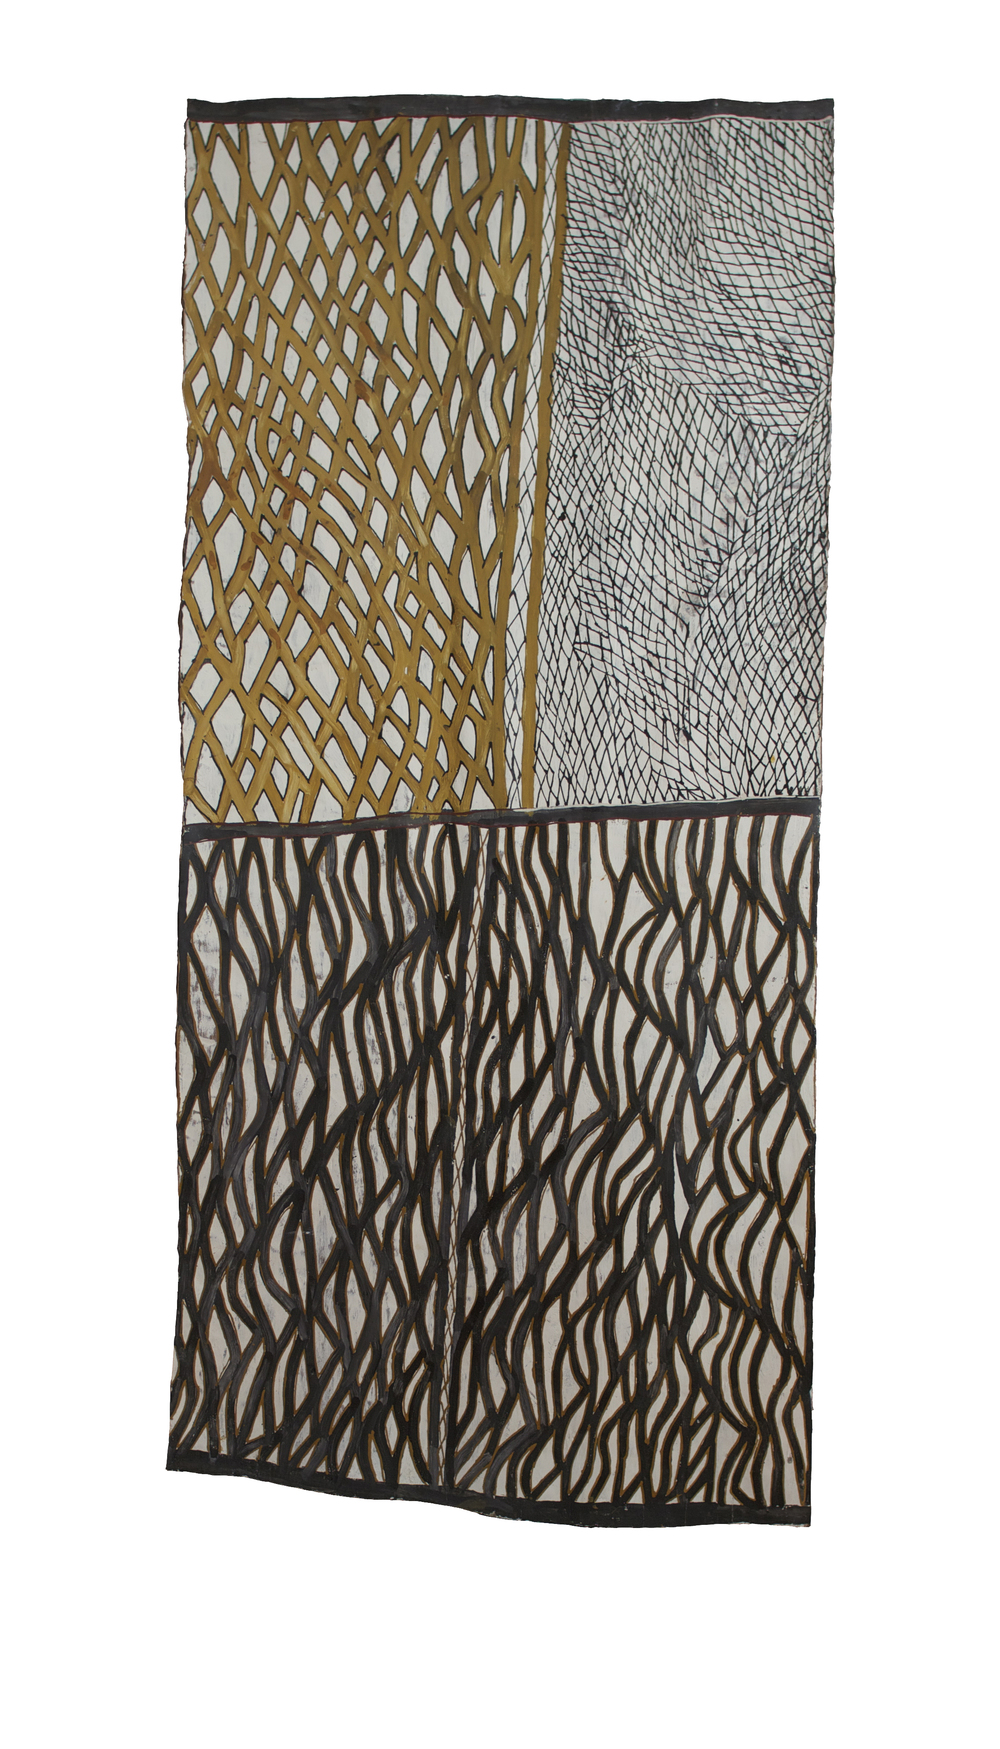 "Nonggirringa Marawili  Yathpika  Natural earth pigments on bark 72"" x 32"" (183 x 83 cm) Catalog #4431l   Price Available upon Request"